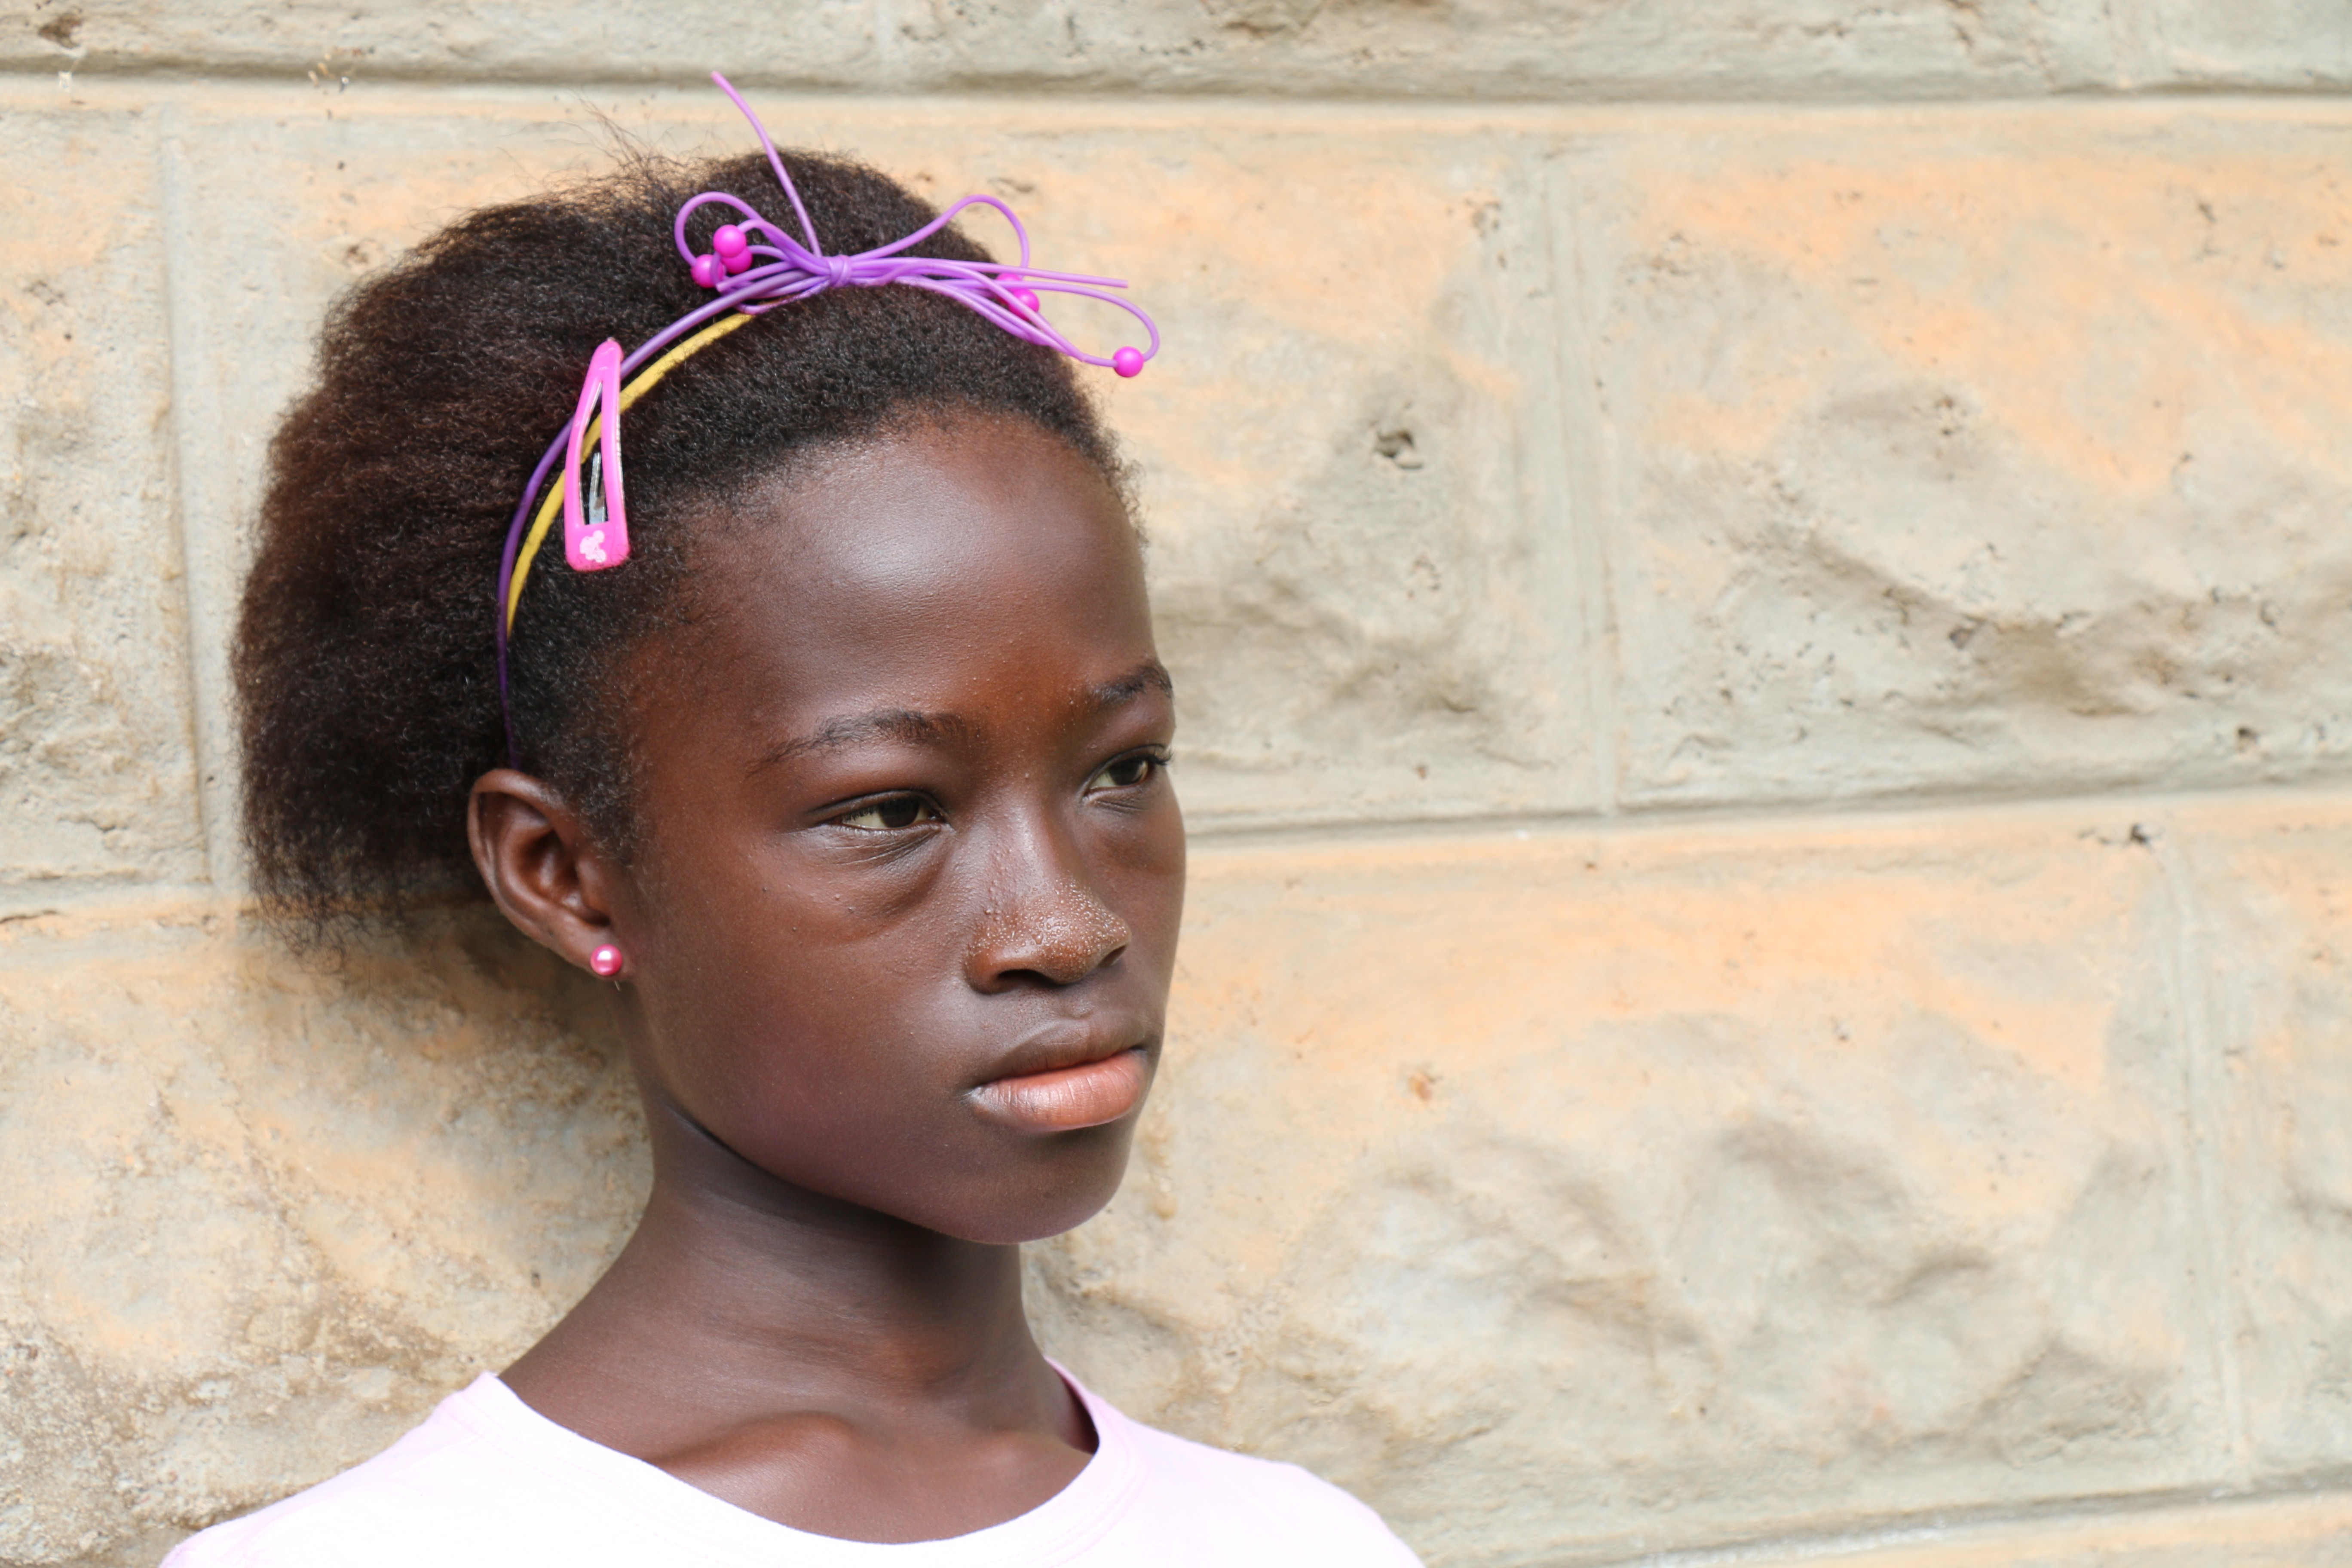 Ijiatu is orphaned after her parents died from Ebola